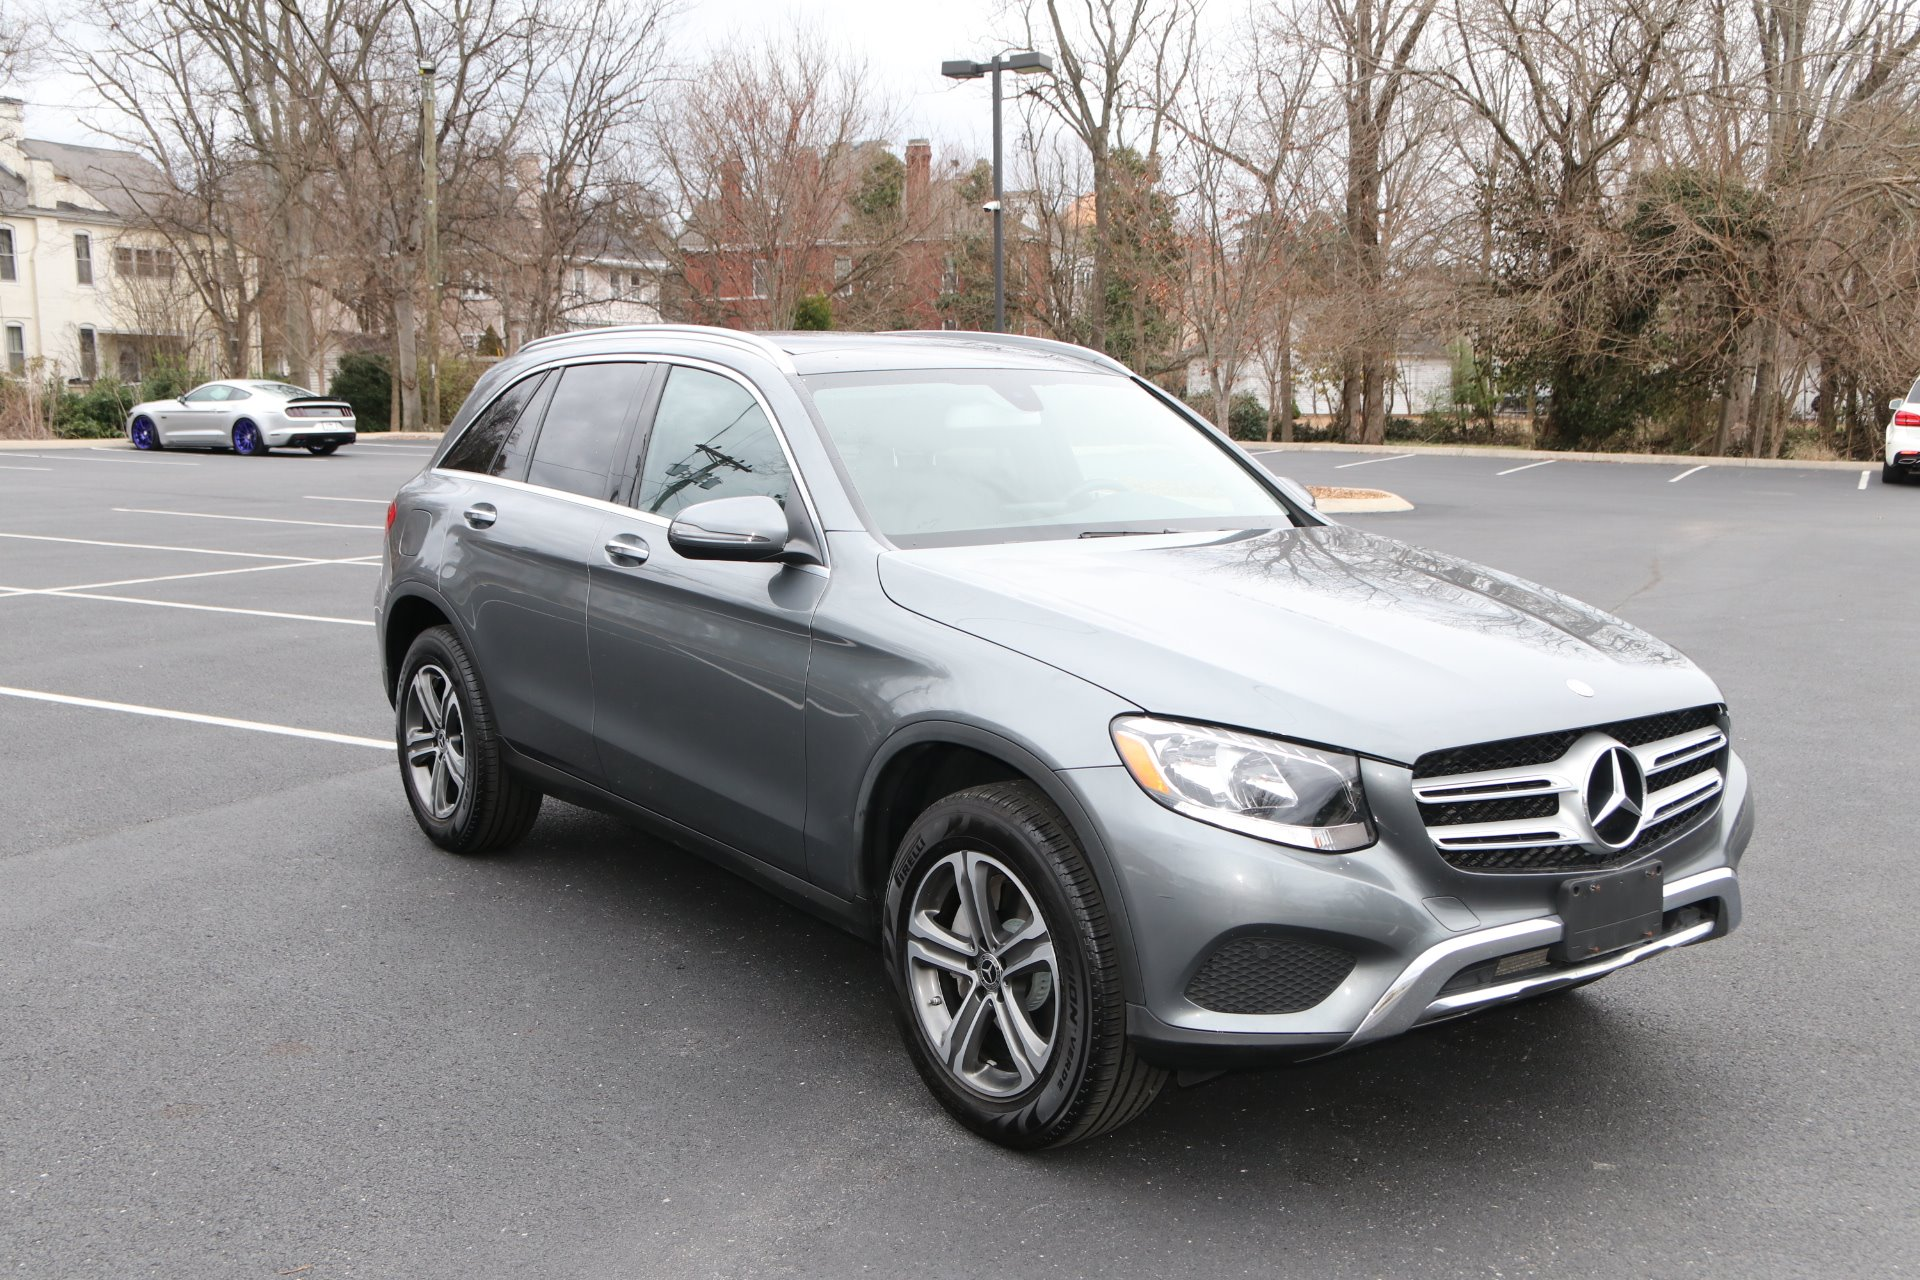 Used 2017 Mercedes-Benz GLC300 4MATIC AWD W/NAV GLC 300 4MATIC for sale $26,950 at Auto Collection in Murfreesboro TN 37129 1